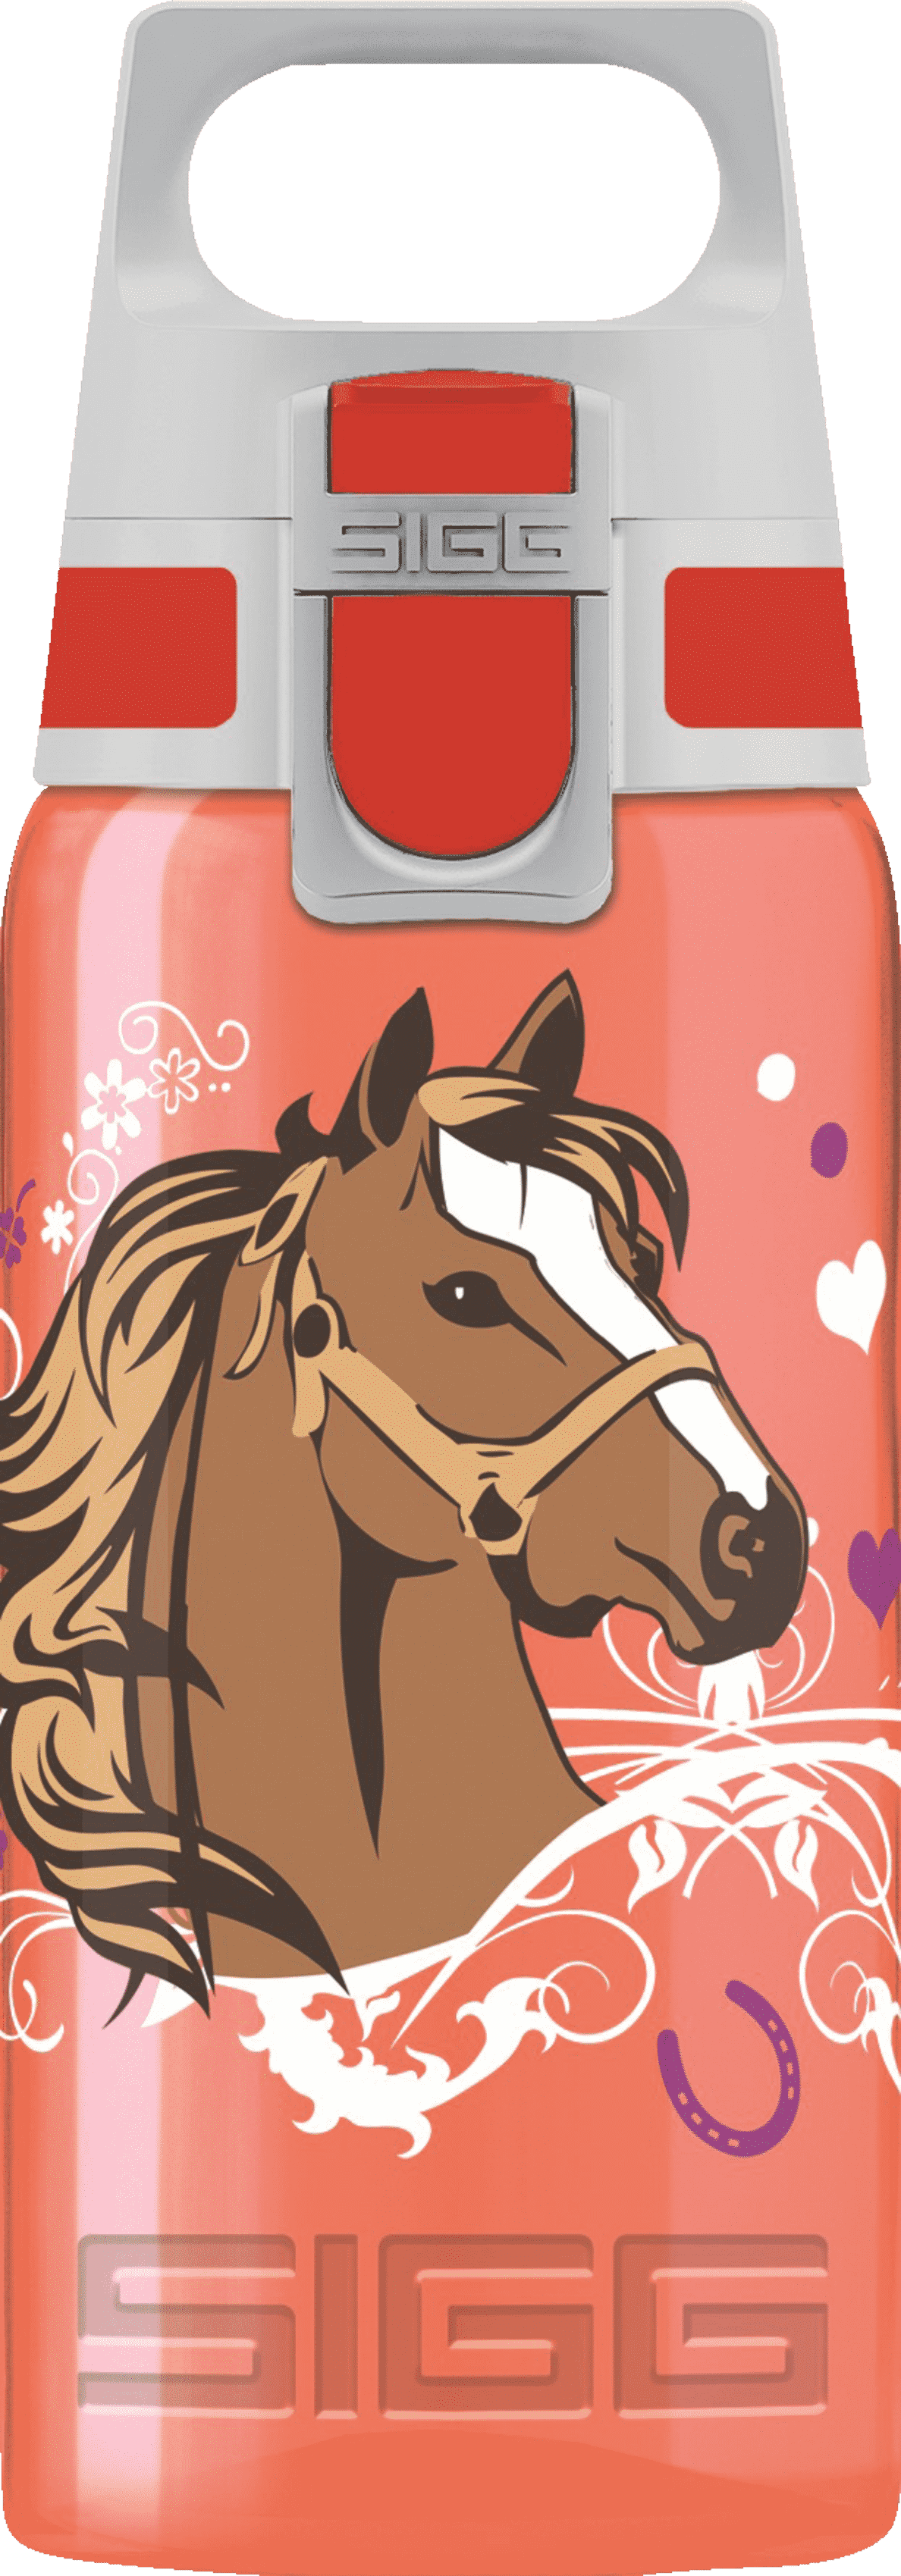 SIGG 8627.5 Viva One Horses Trinkflasche in Rot